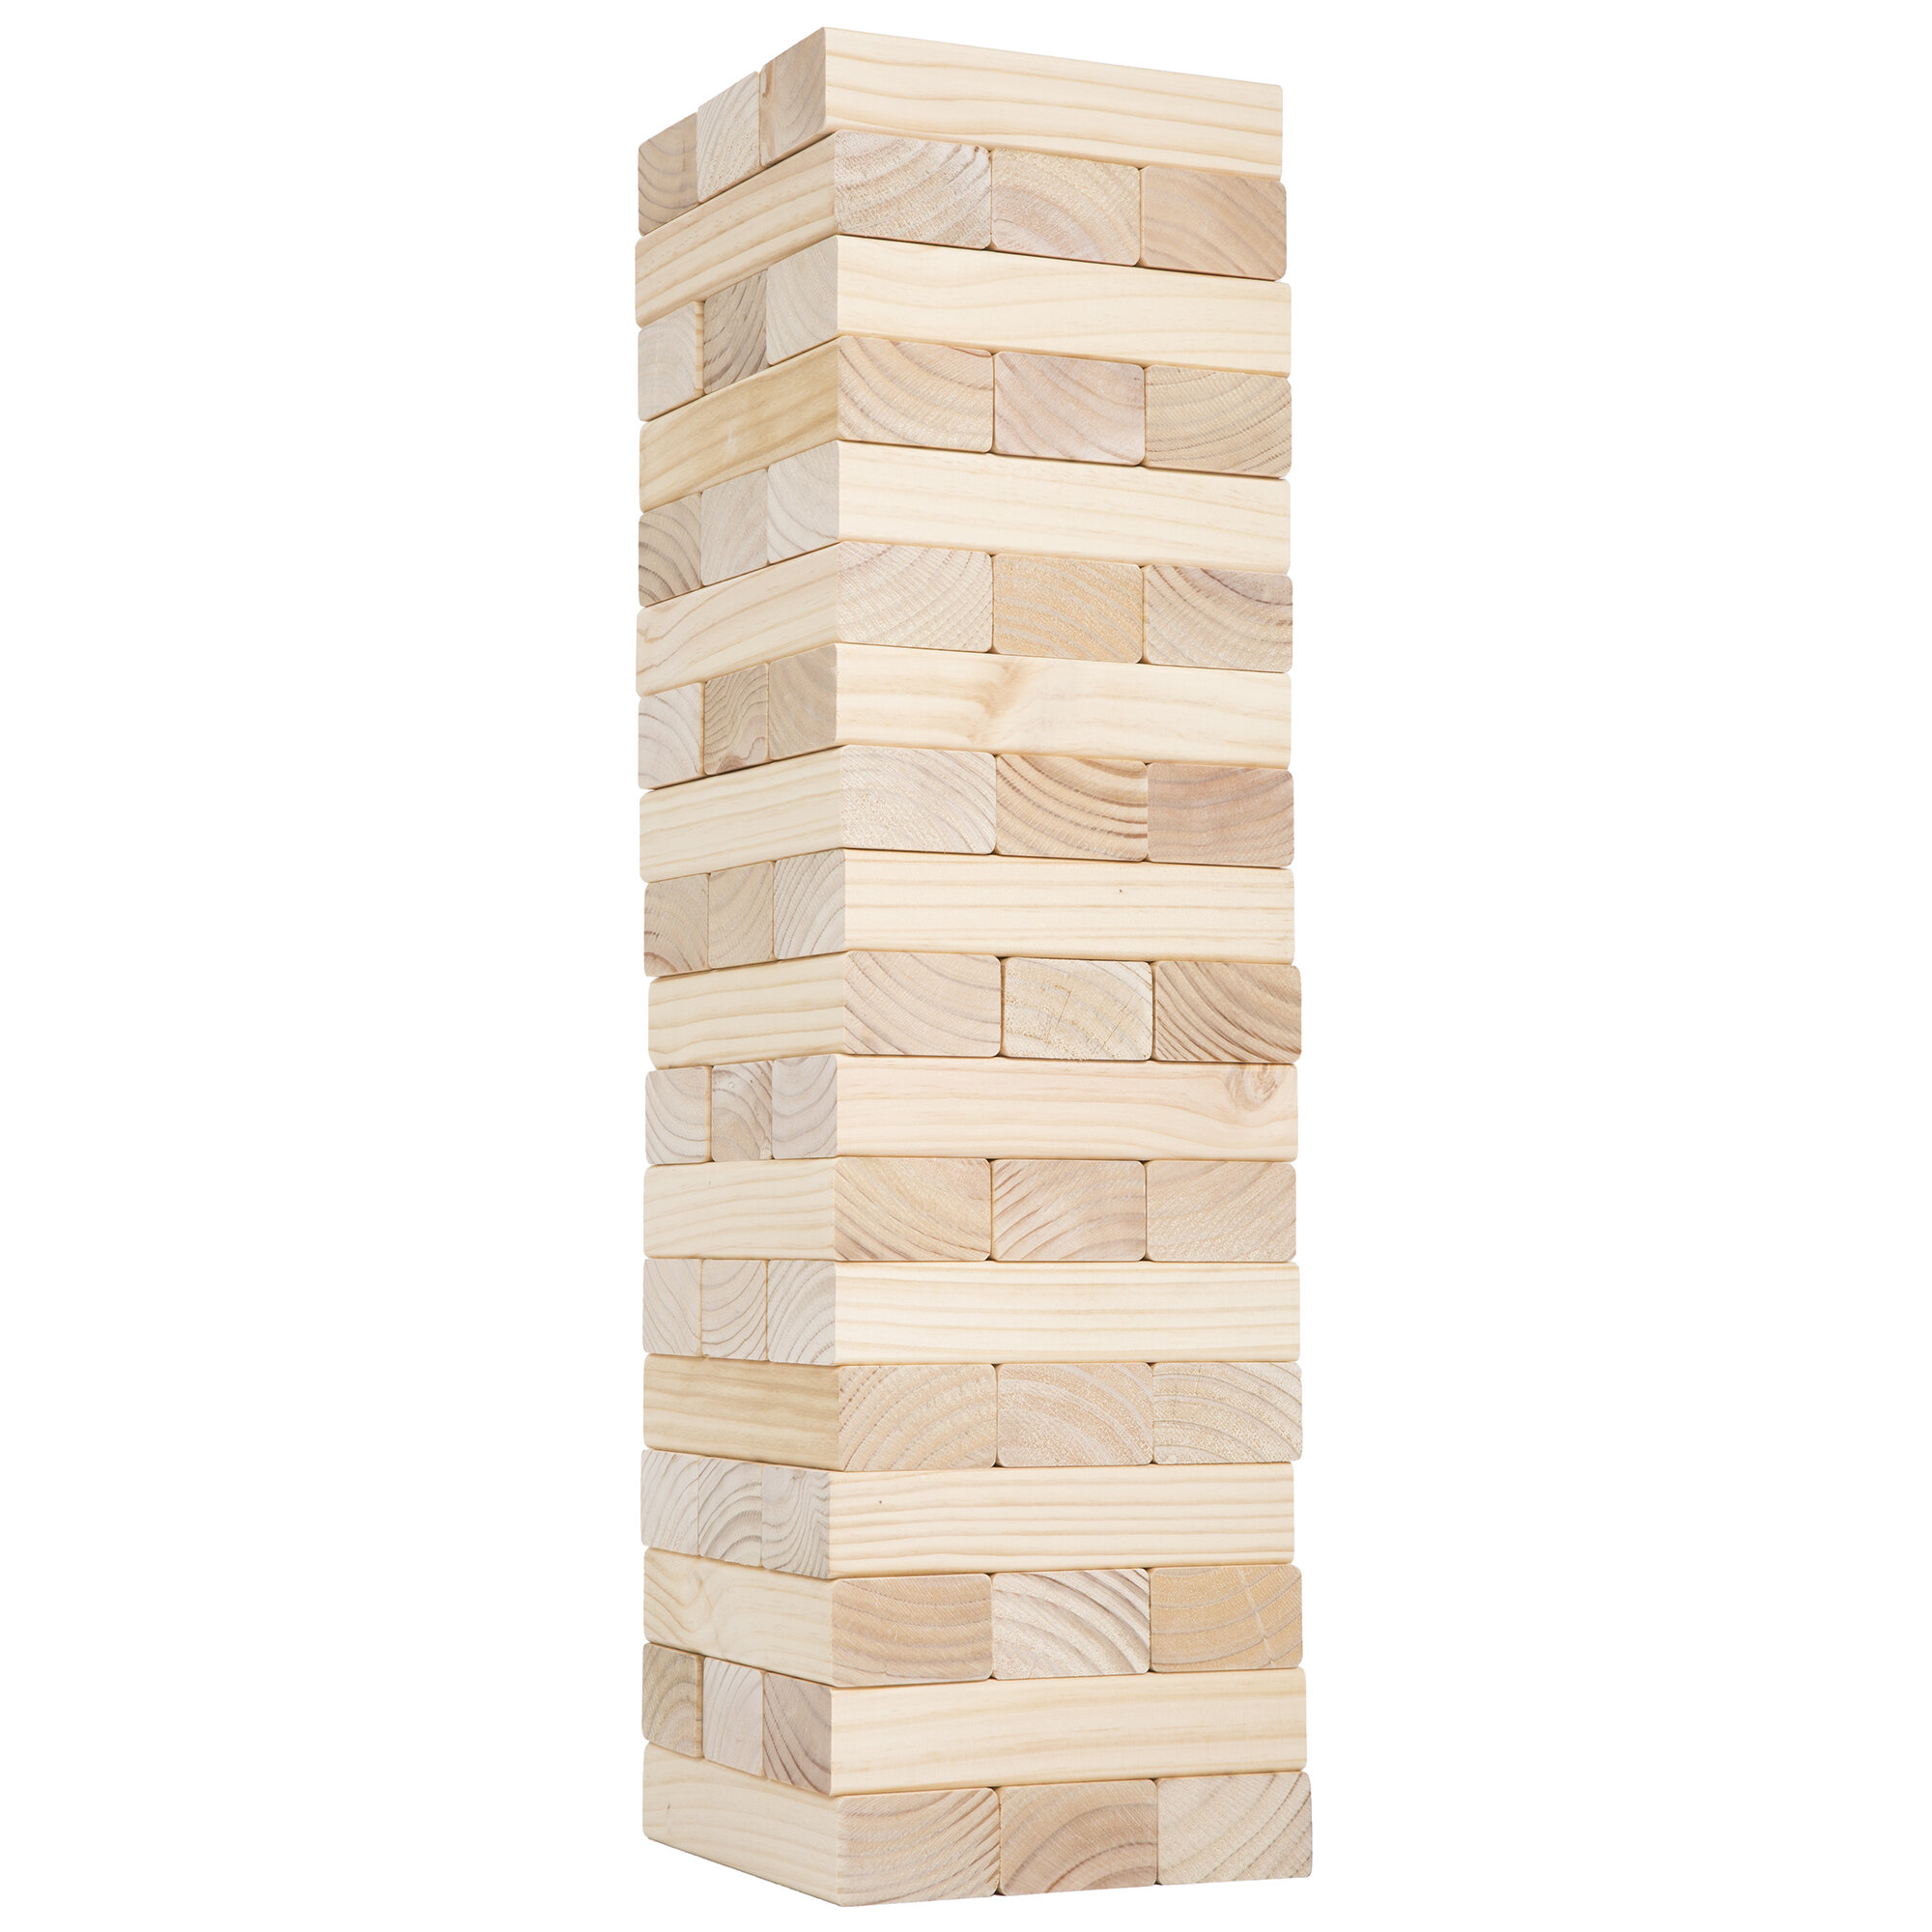 Classic Giant Wooden Blocks Tower Stacking Game